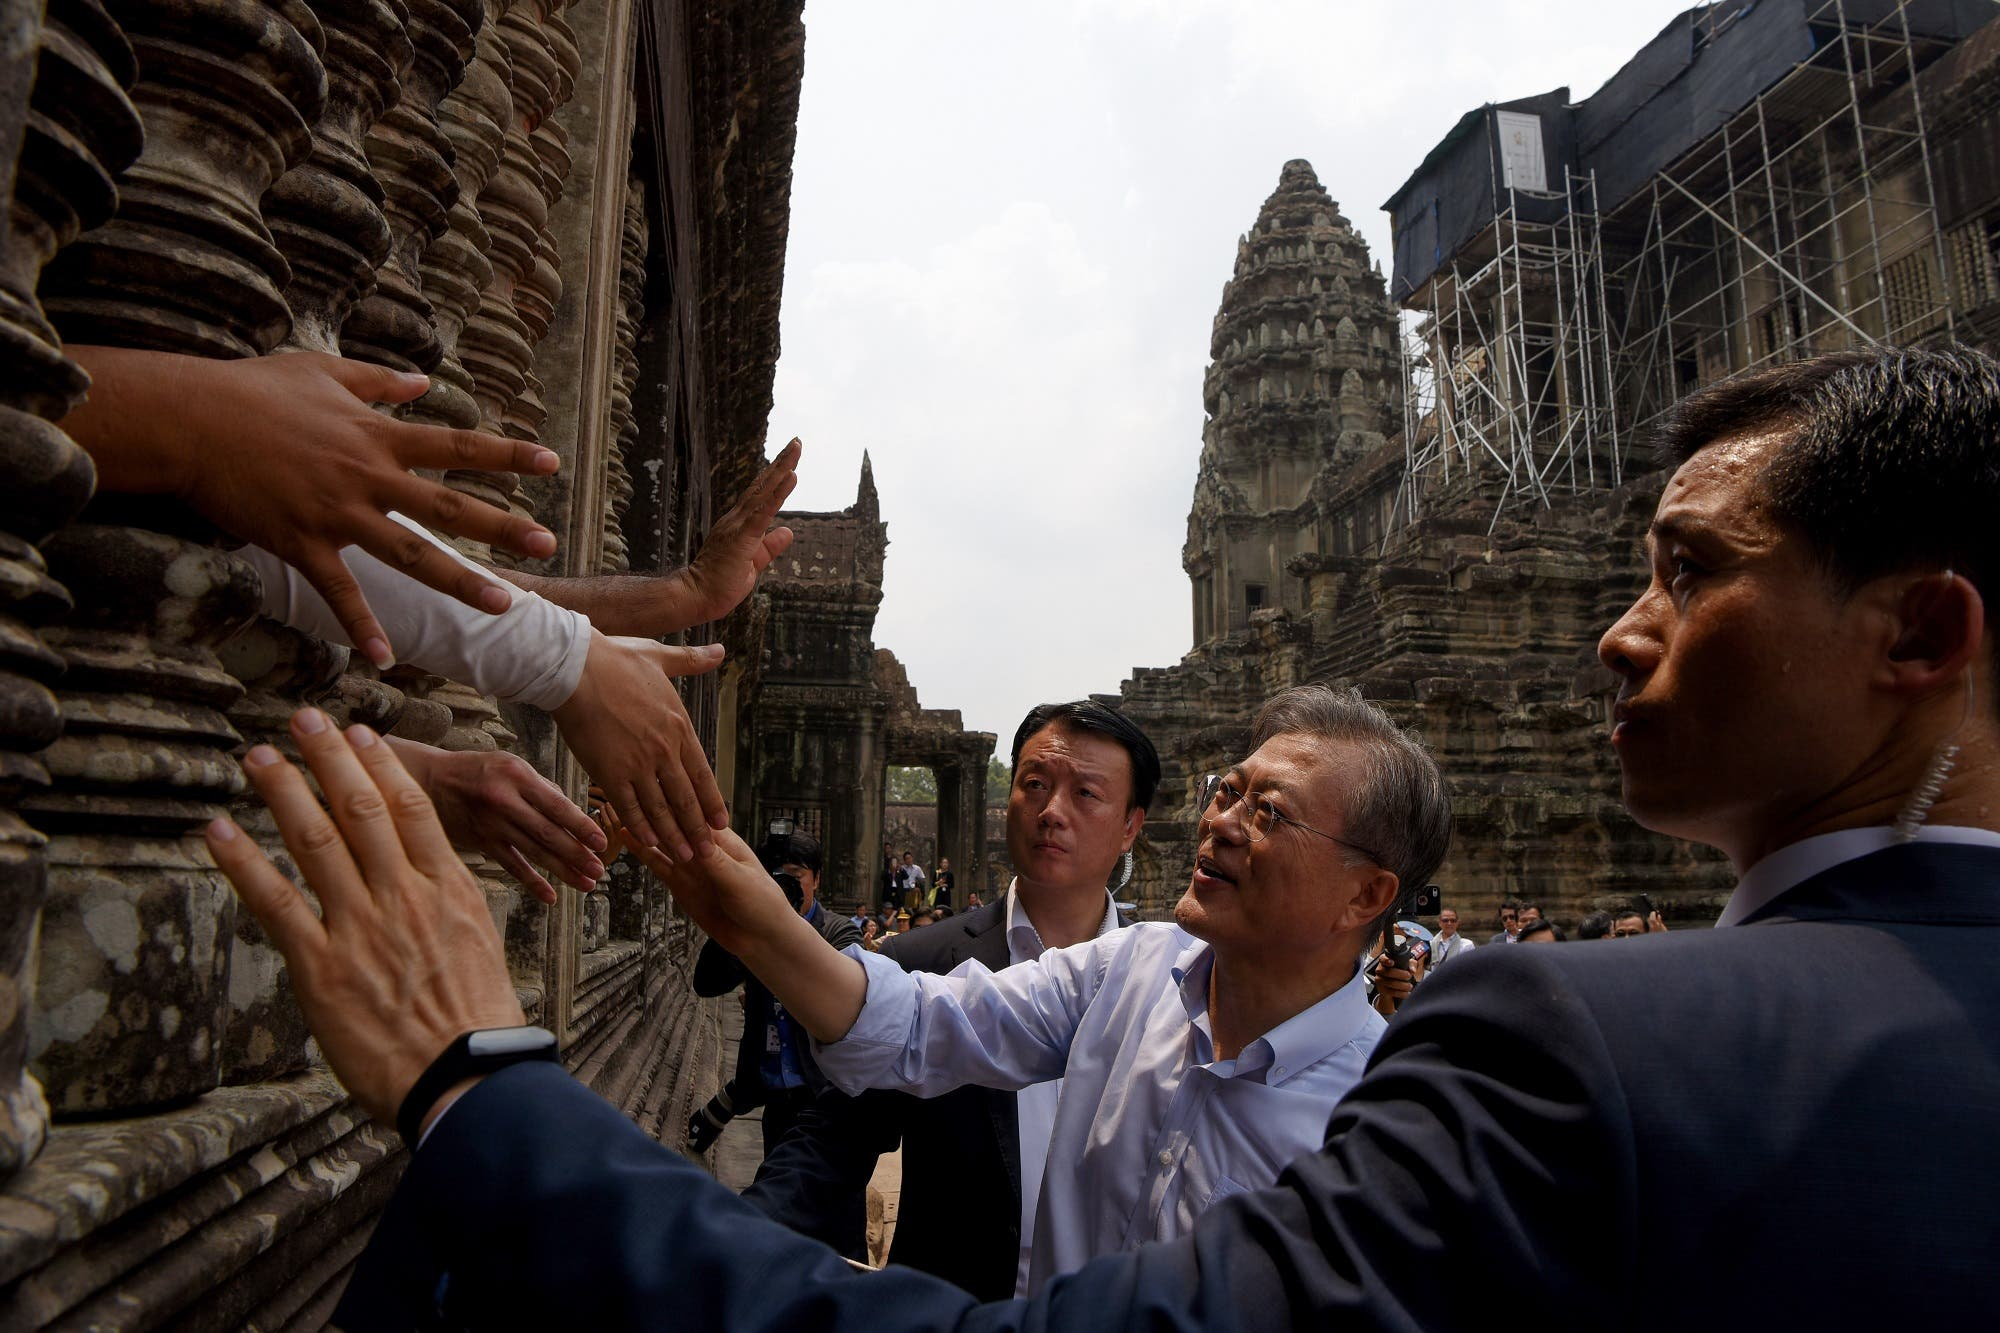 South Korea's President Moon Jae-in shakes hands with tourists during his visit to Angkor Wat temple in Siem Reap province on March 16, 2019. (AFP)